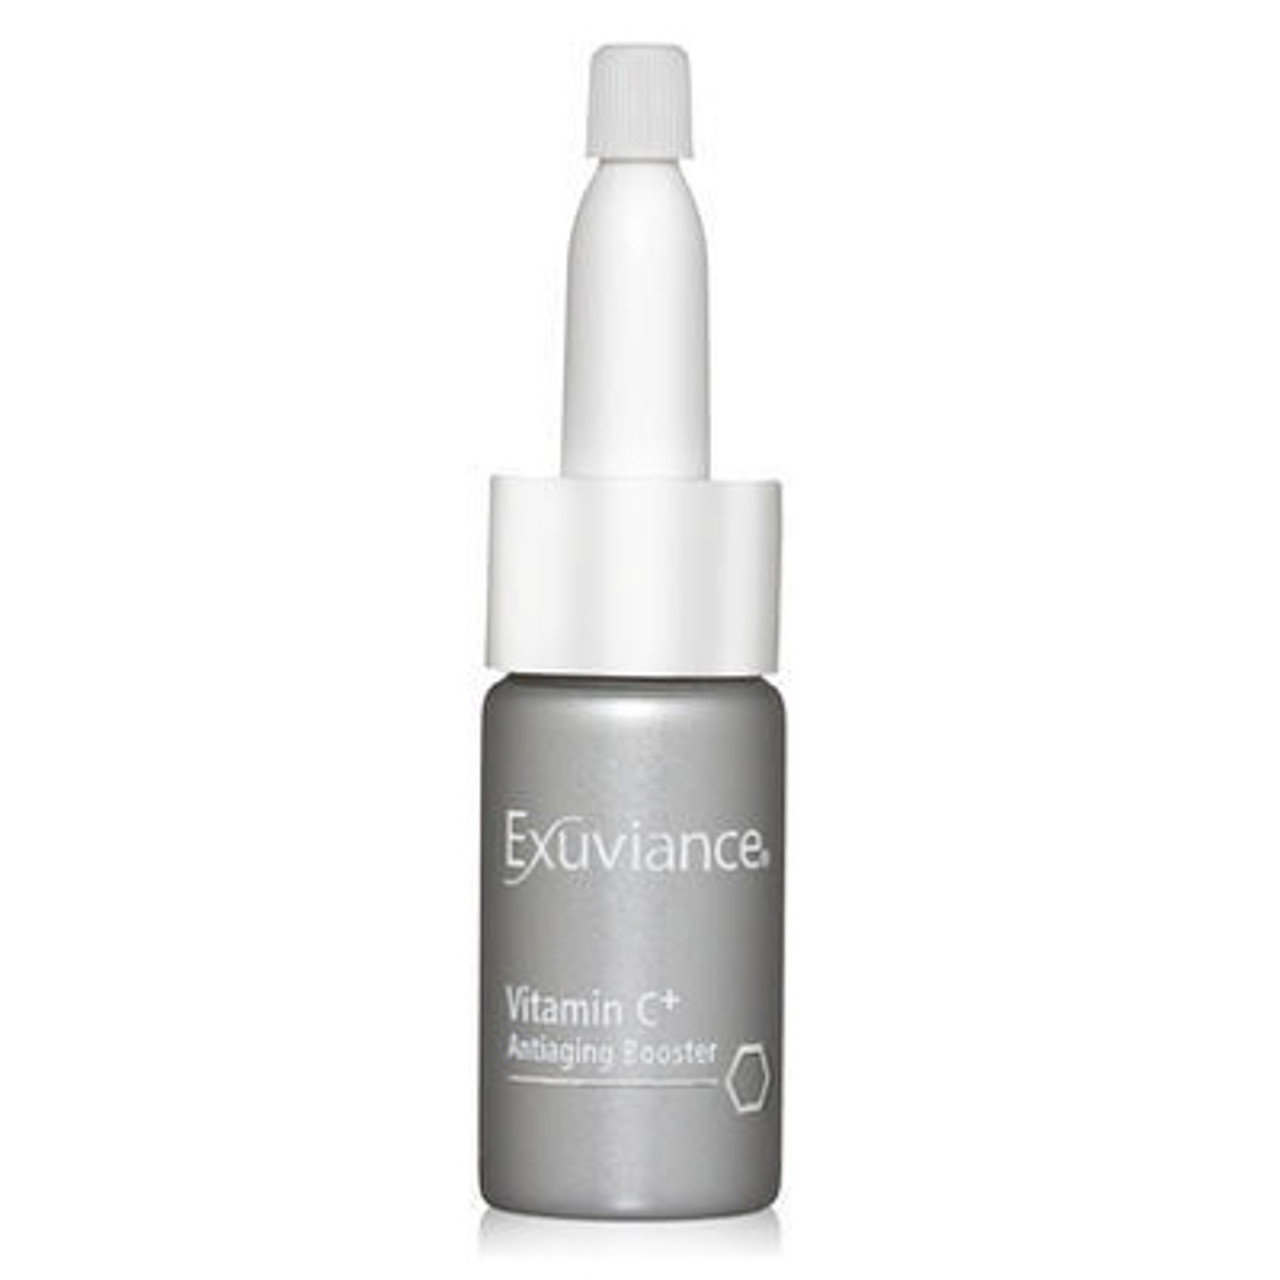 Exuviance Vitamin C Antiaging Booster